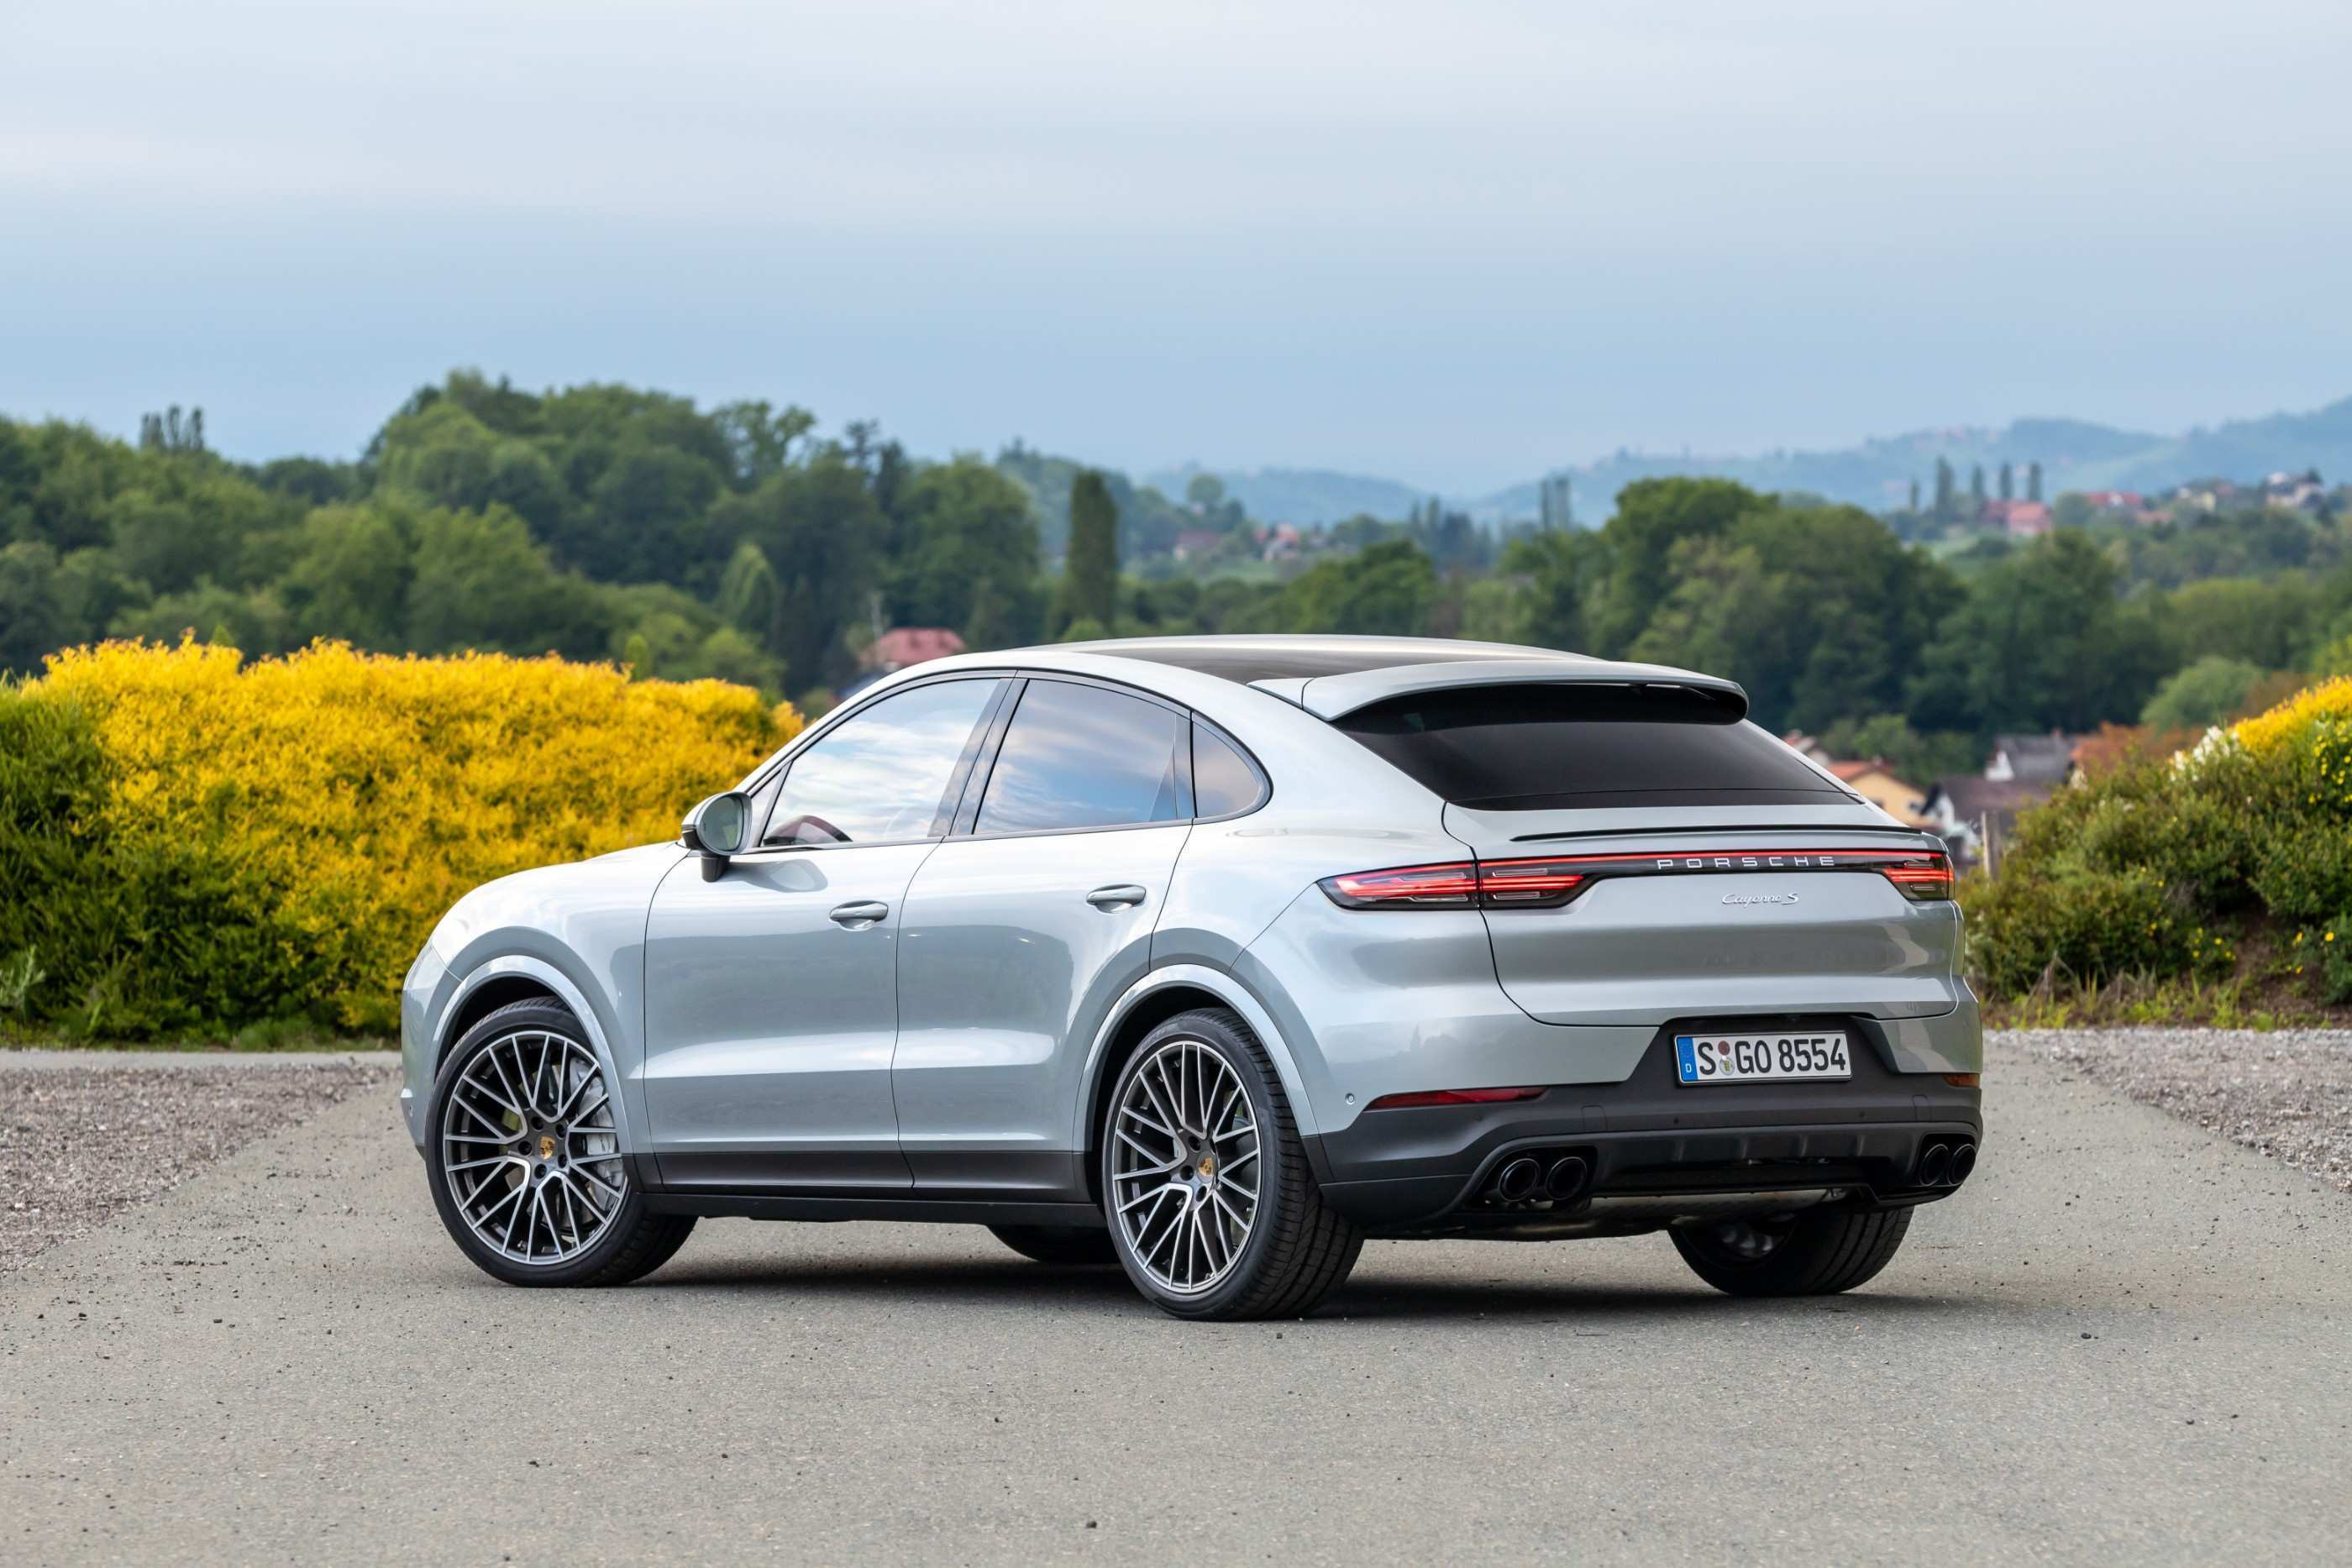 77 The Best 2020 Porsche Cayenne Specs